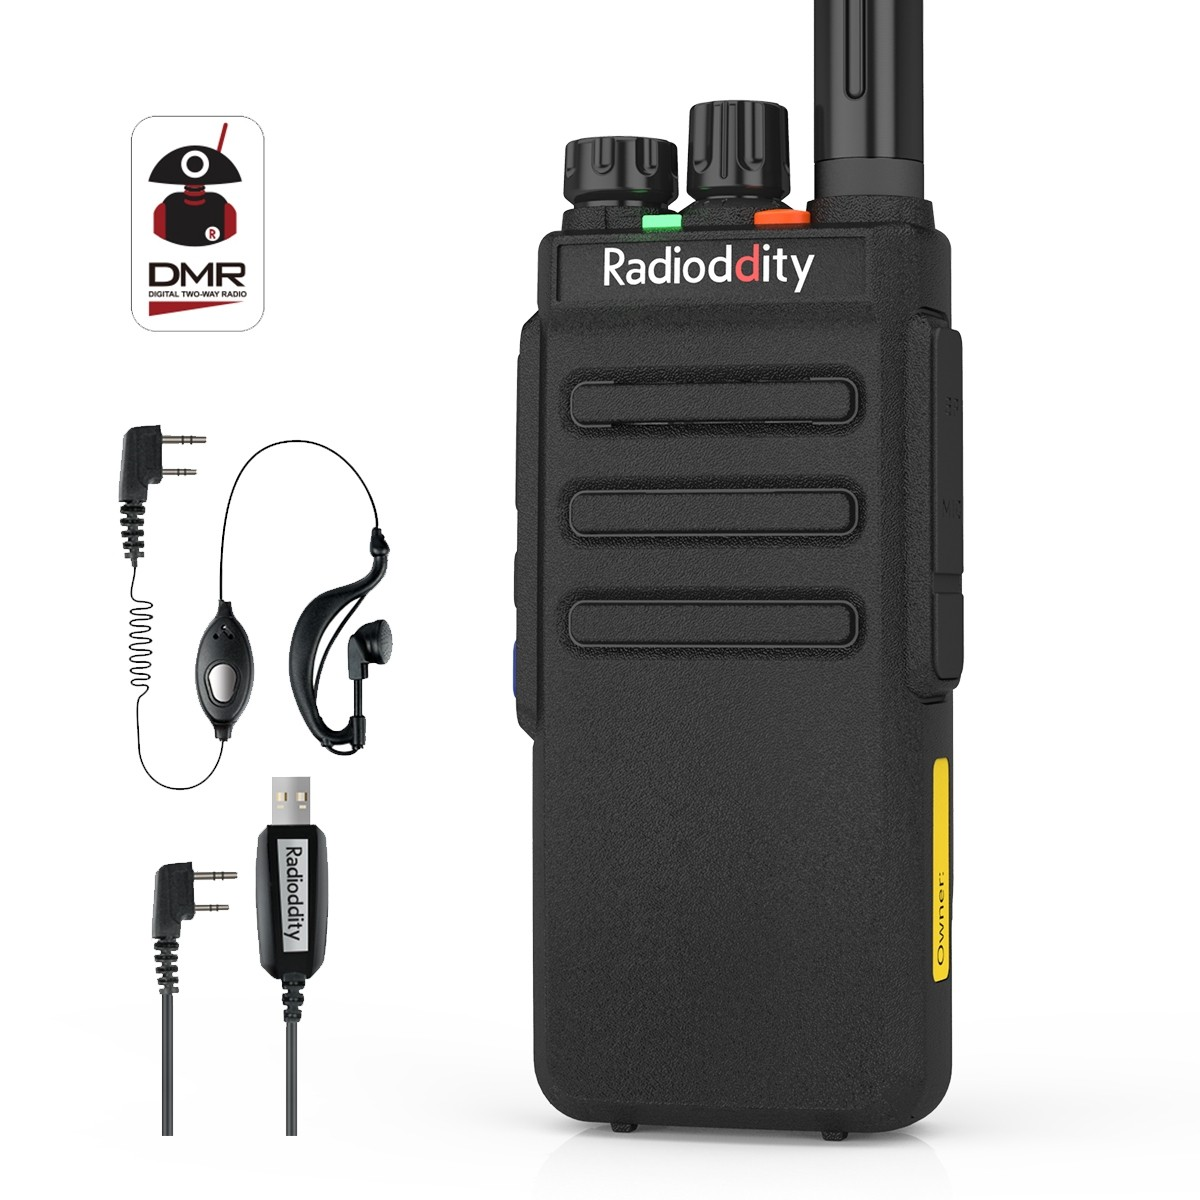 Radioddity GD-77S Dual Band Dual Time Slot DMR Two Way Radio Compatible with MOTOTRBO + Programming Cable